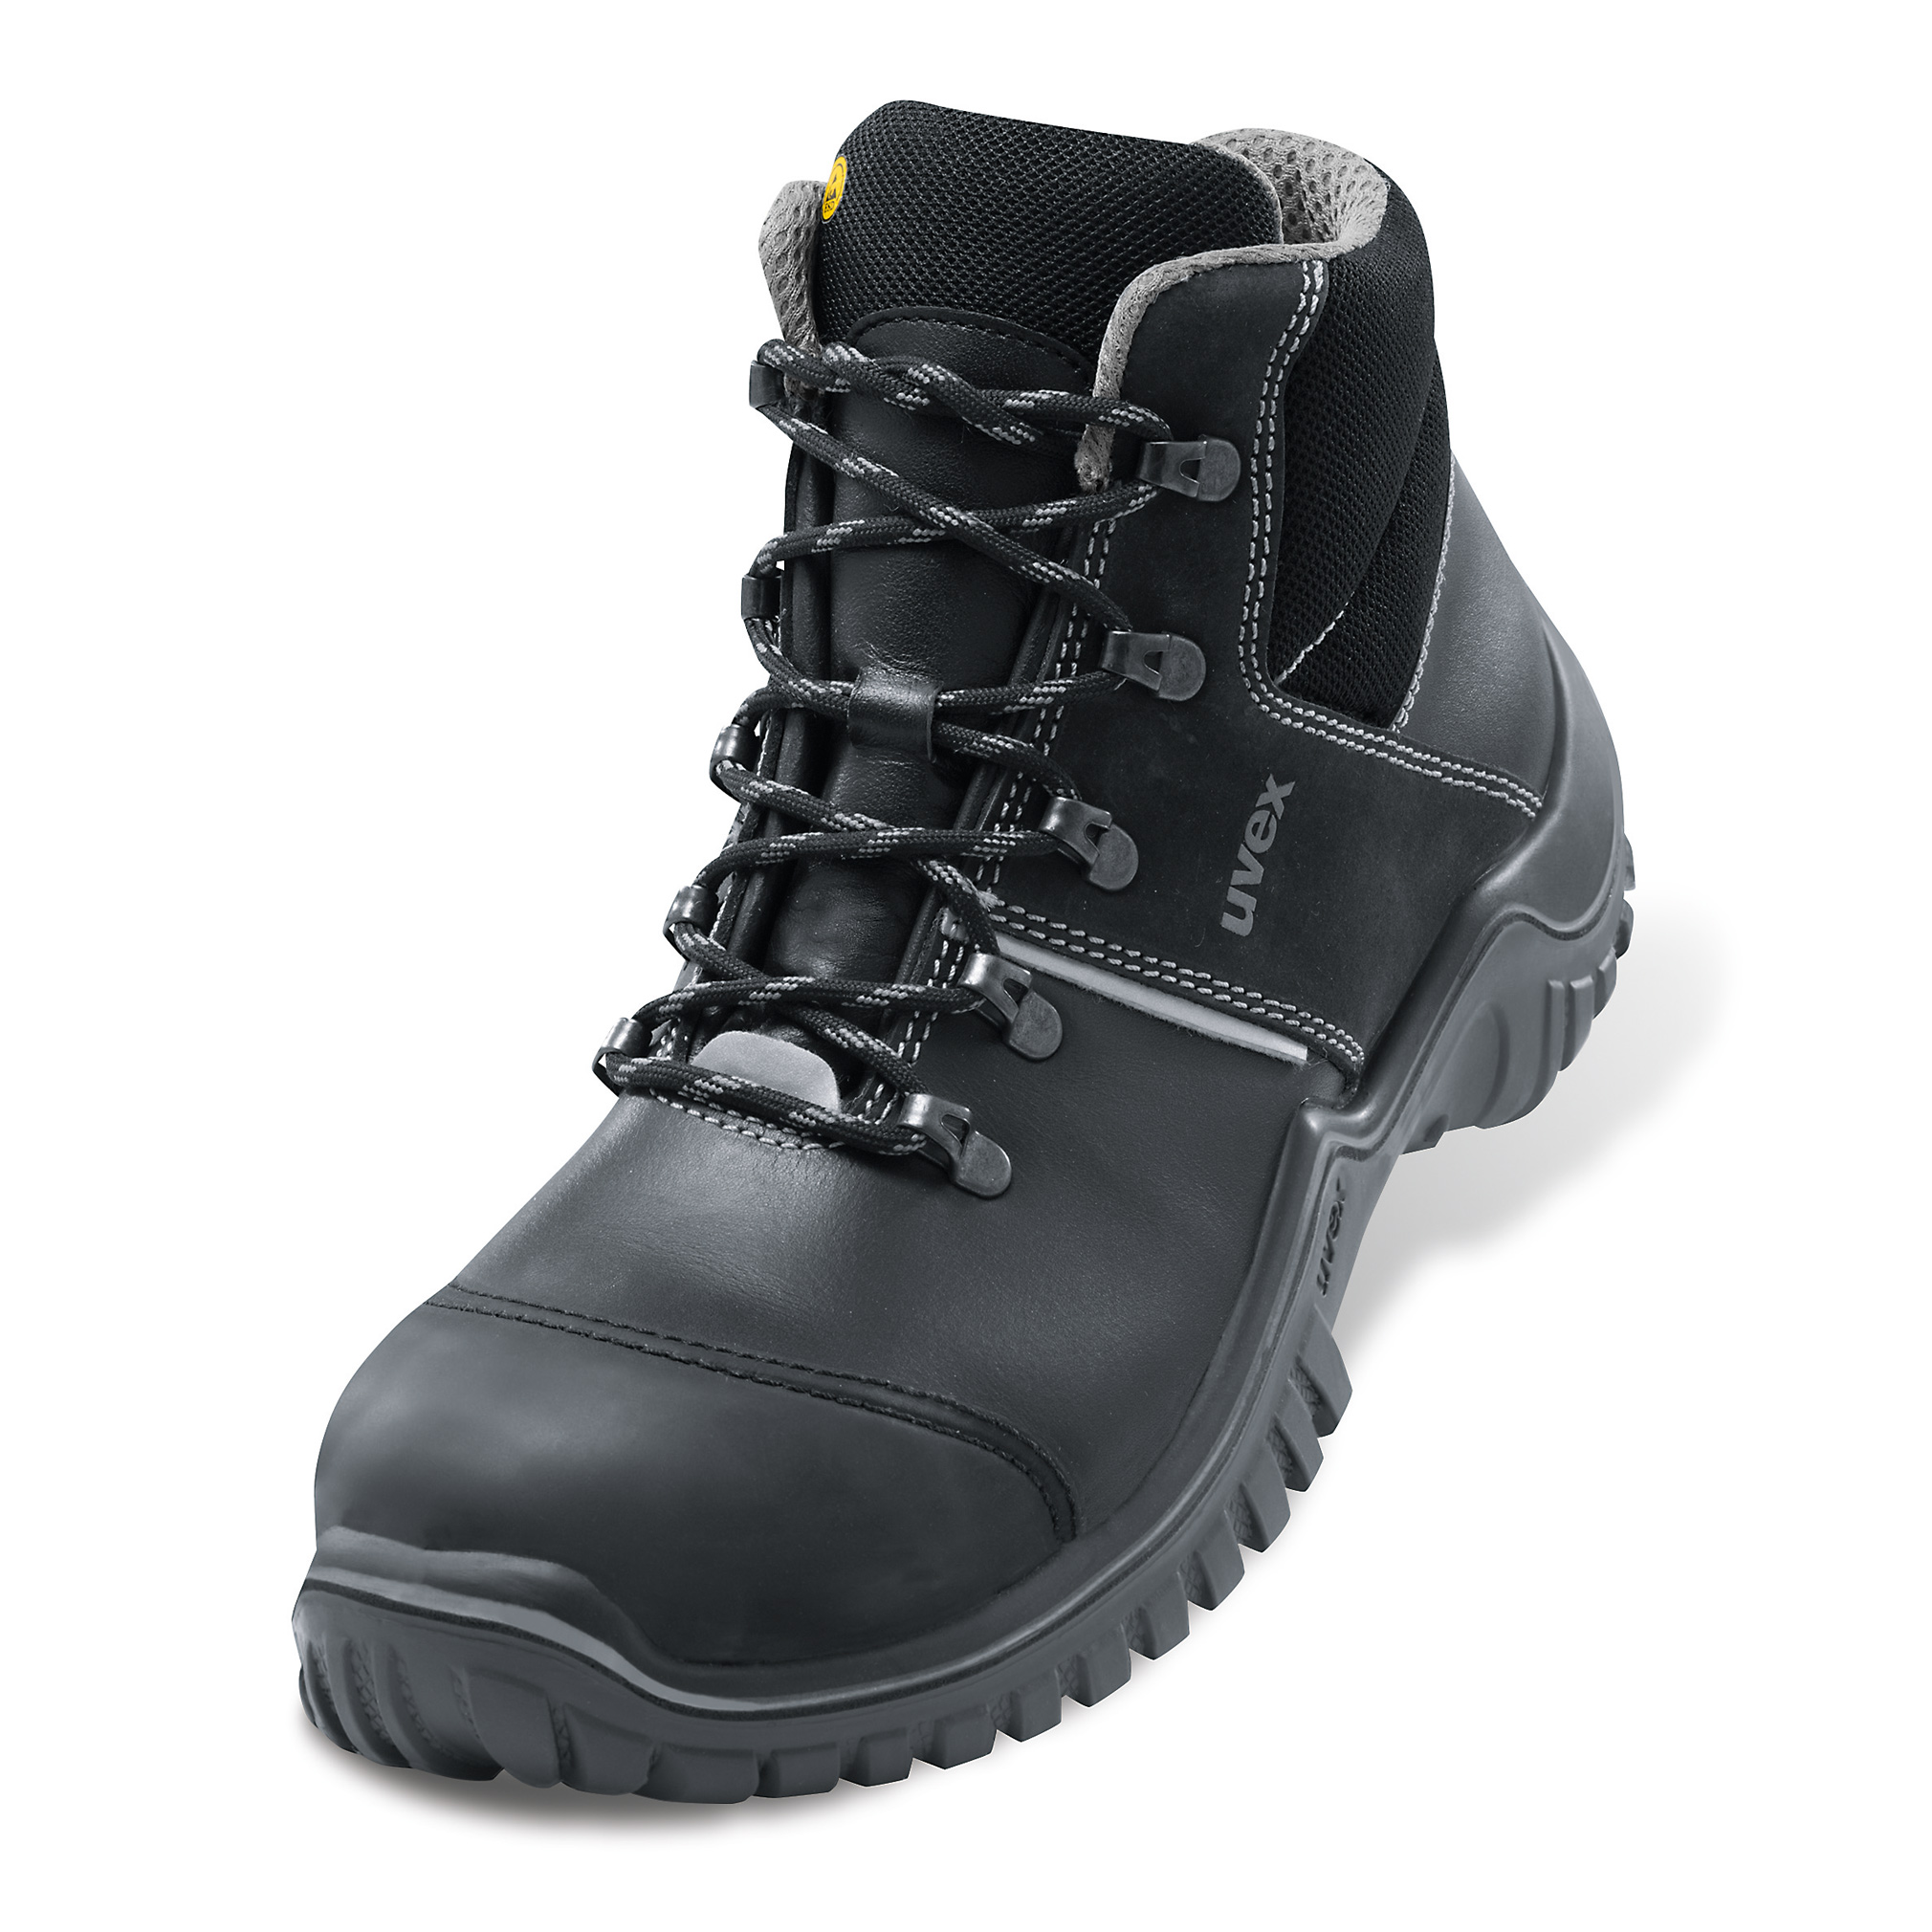 8eeeeaaac30 uvex motion classic 2.0 S3 SRC lace-up boot | Safety shoes | uvex safety